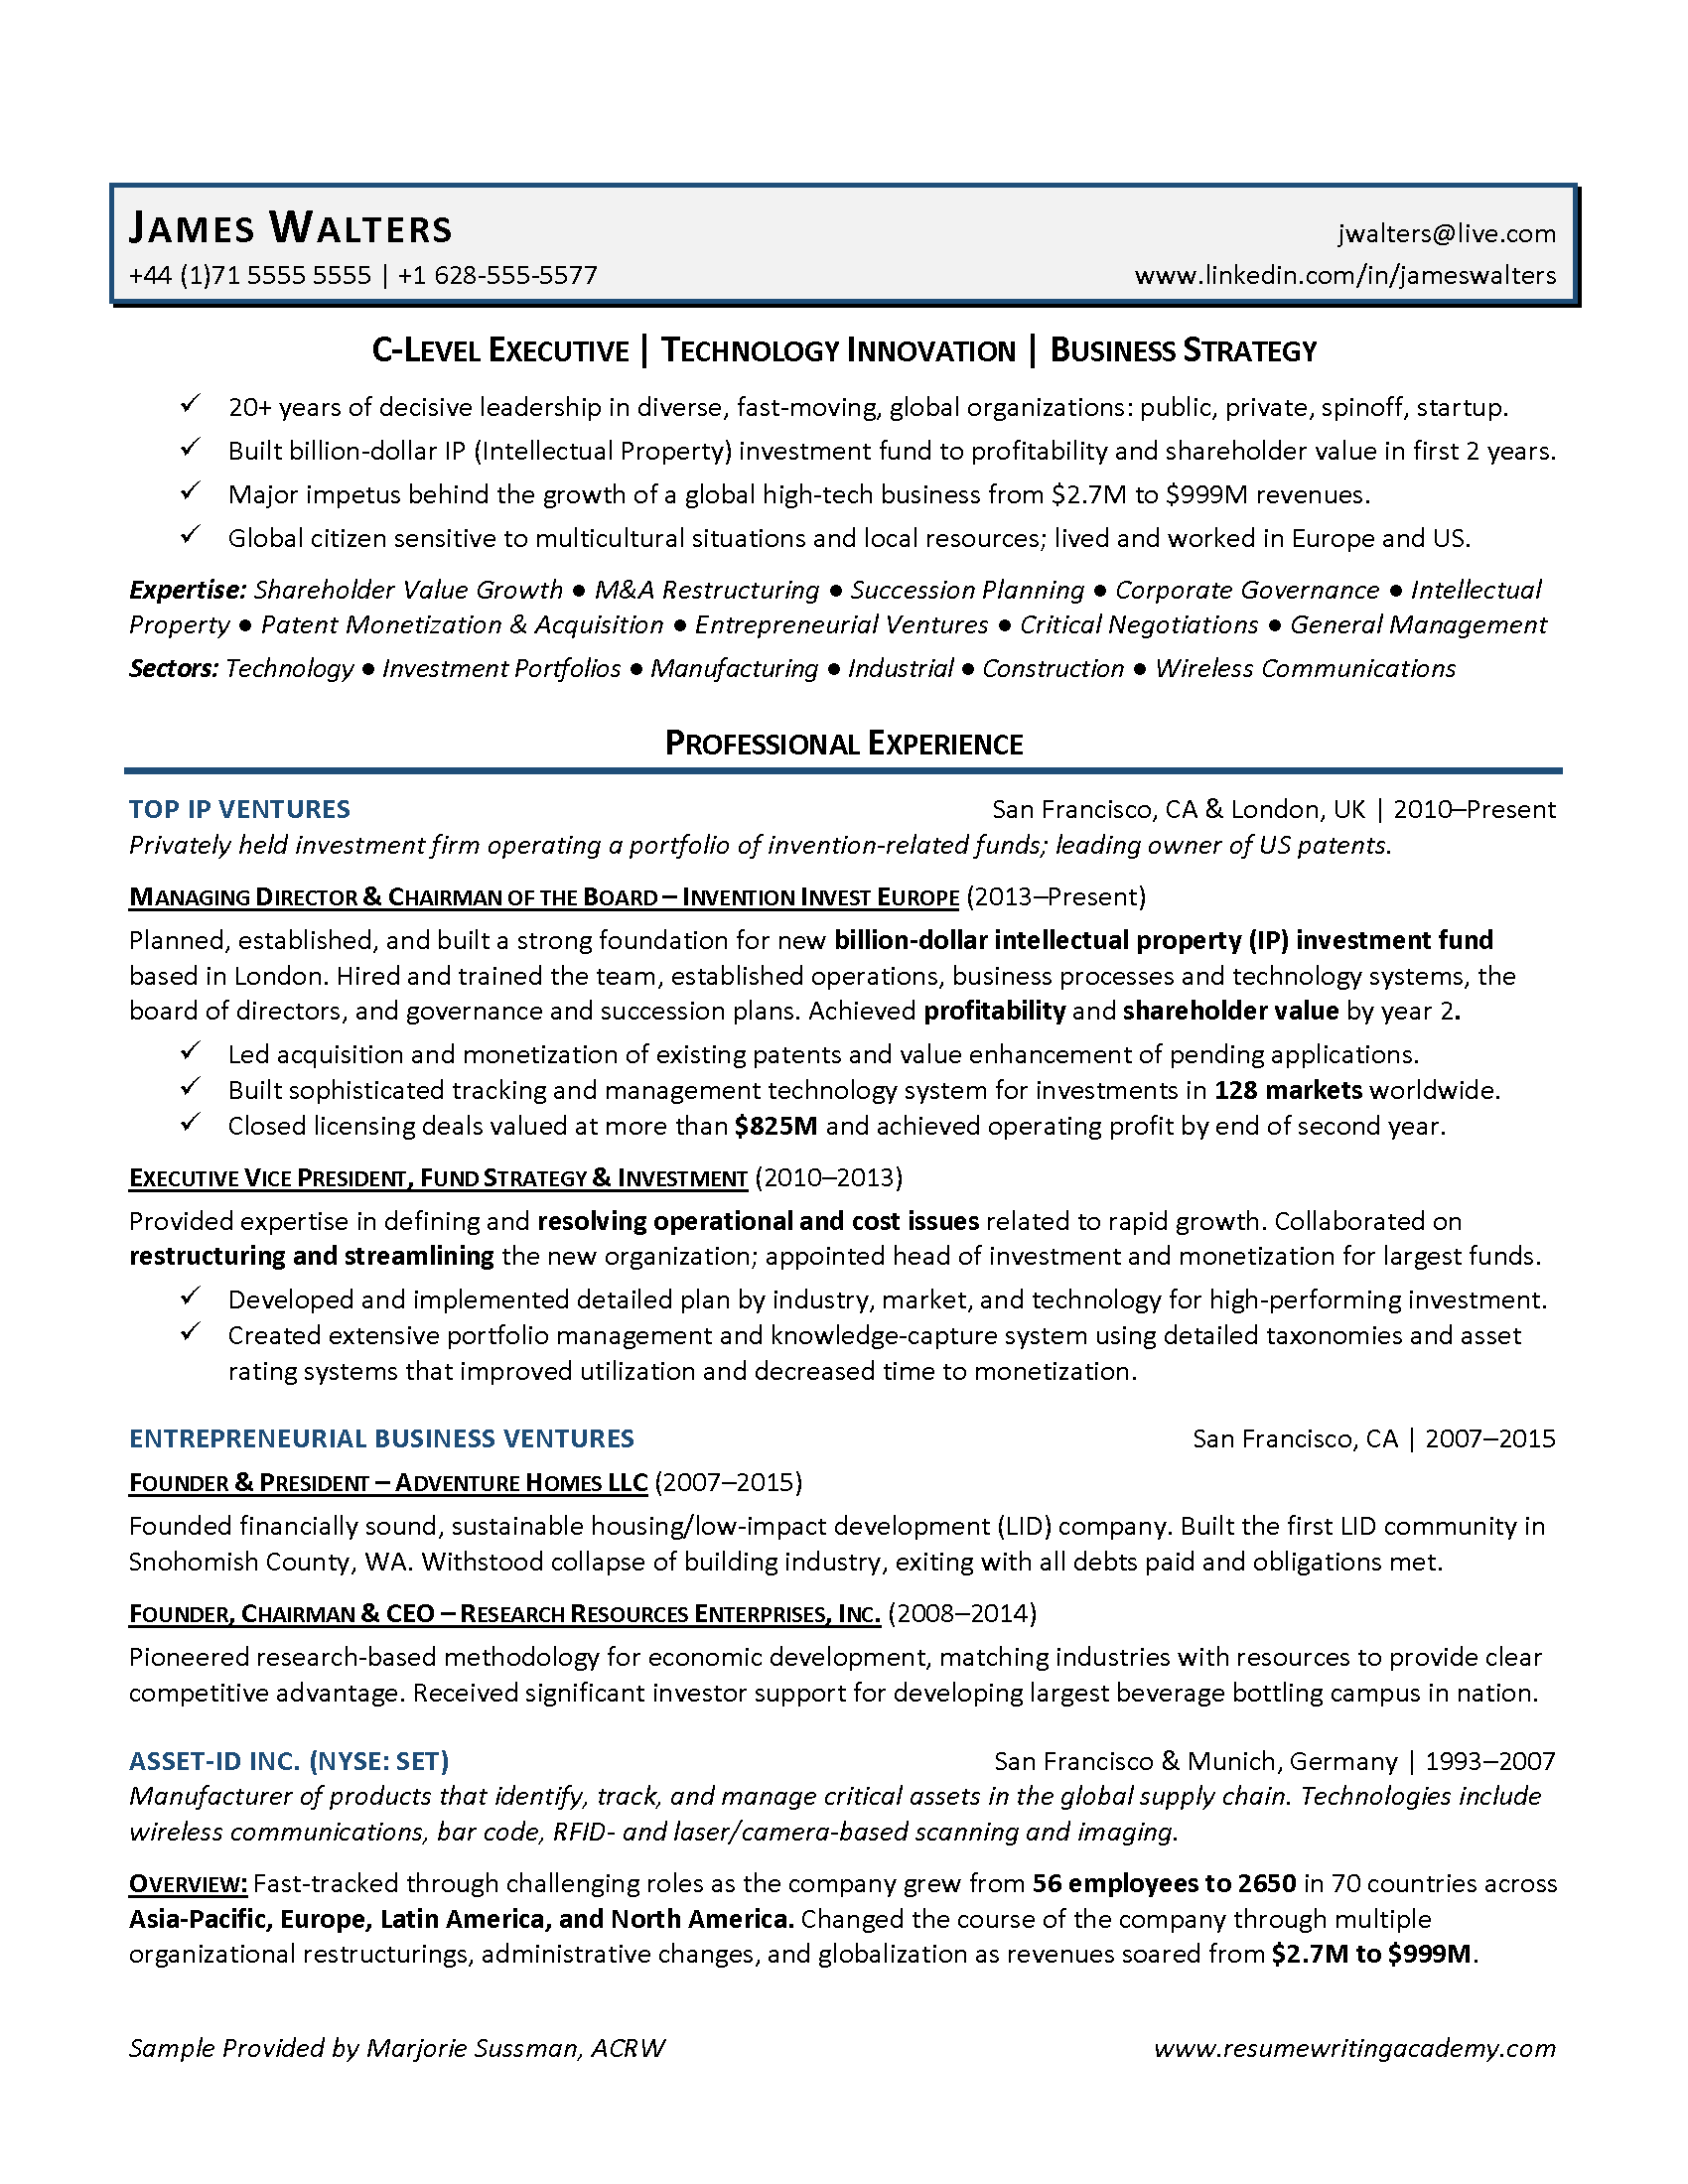 resume writing academy 3 strategies for executive resumes